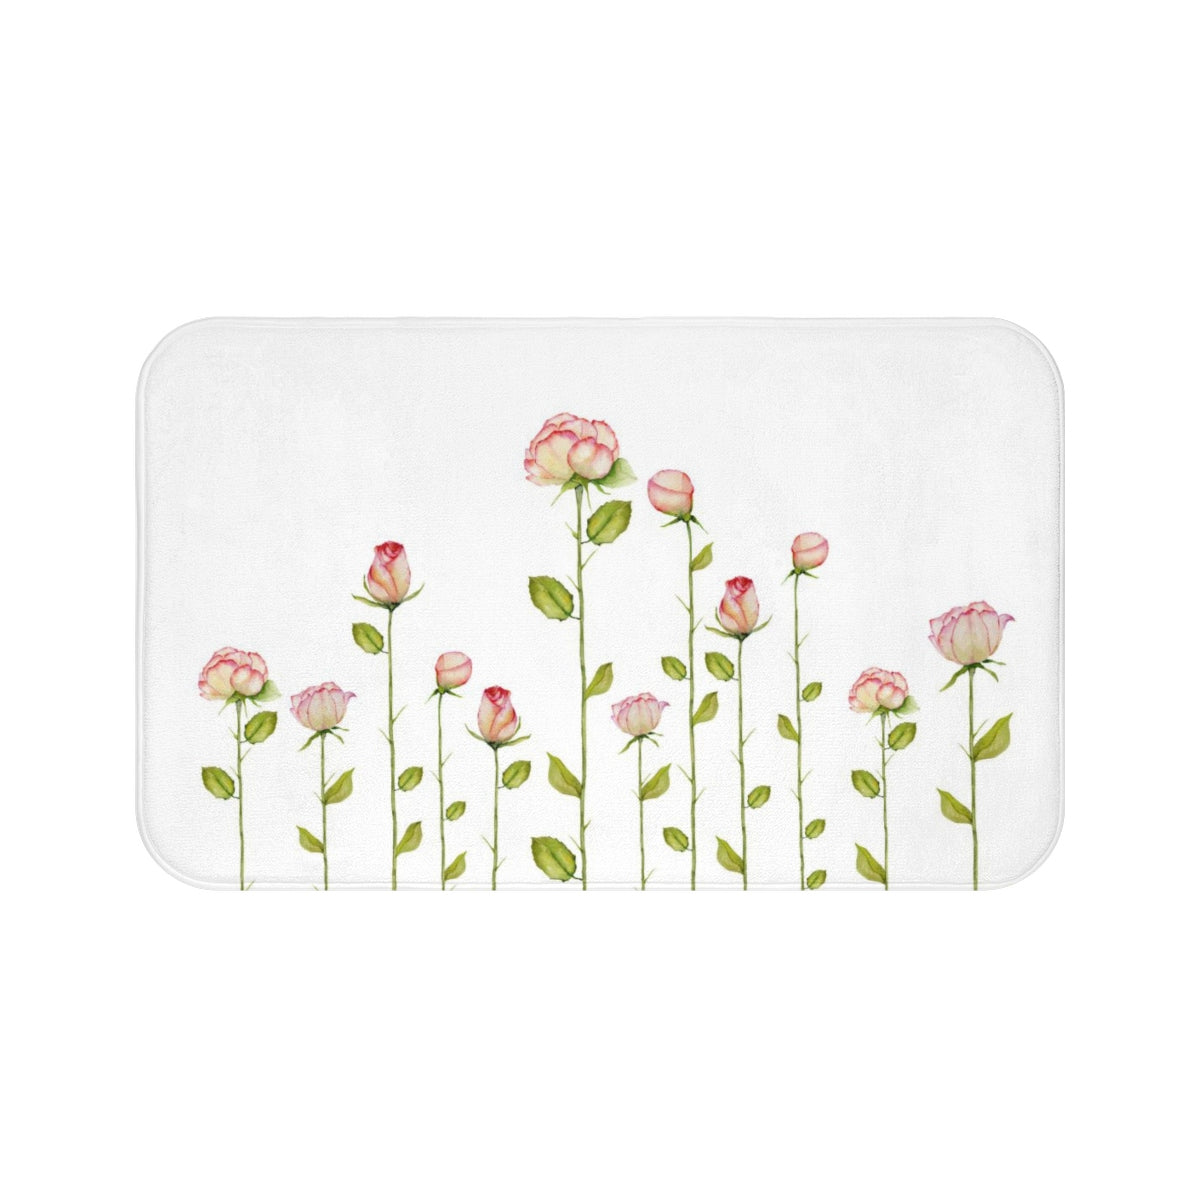 white bath mat with a print of pink roses